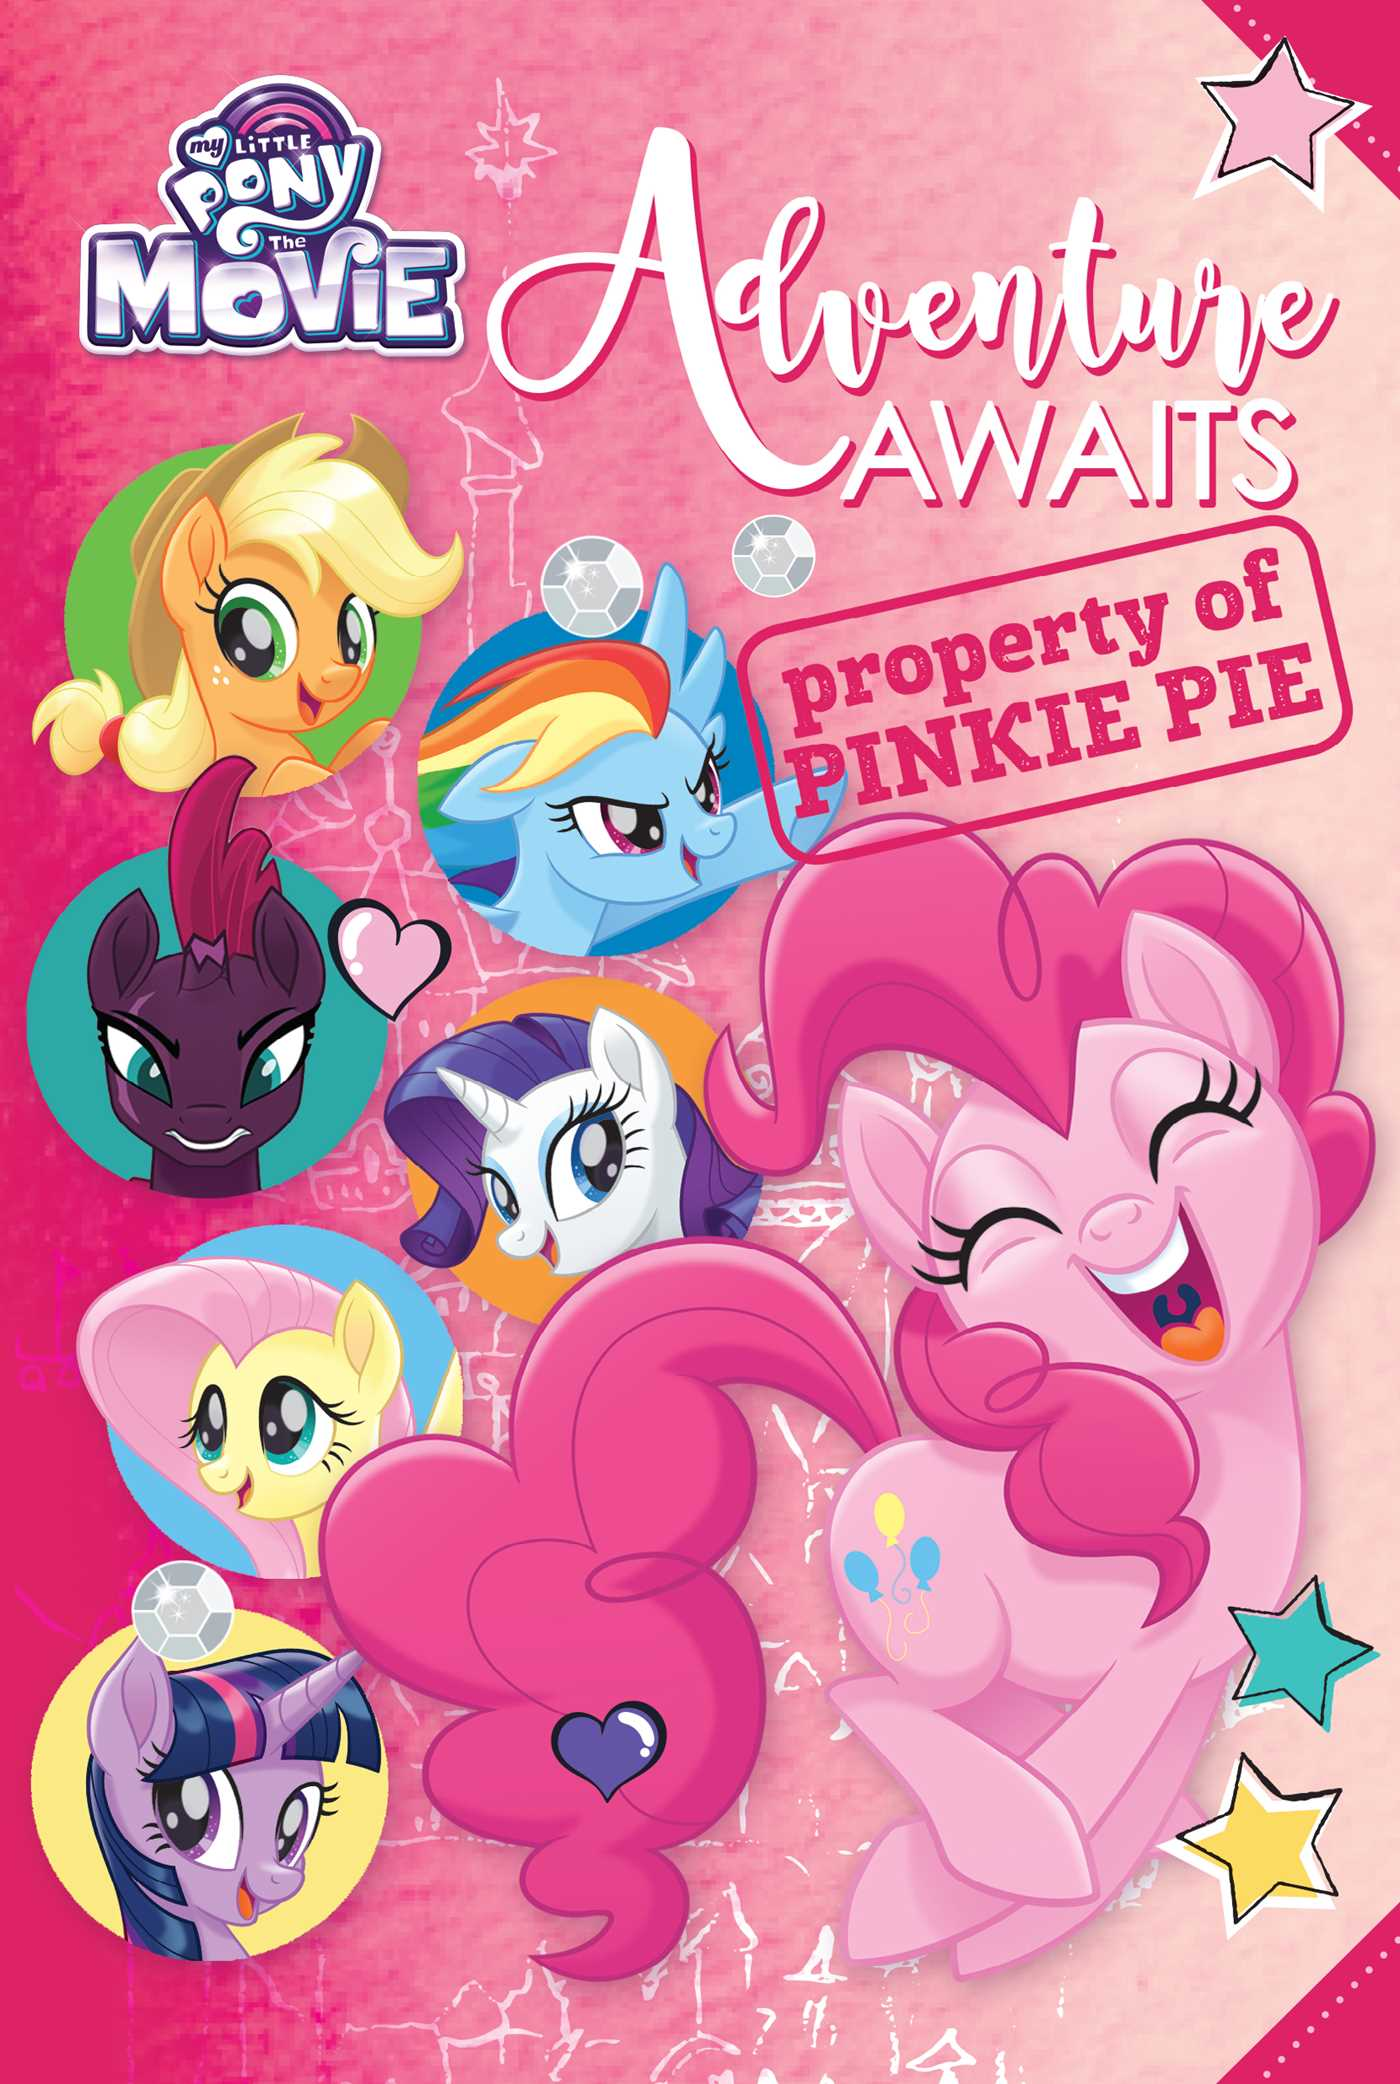 My little pony the movie adventure awaits 9780794440435 hr